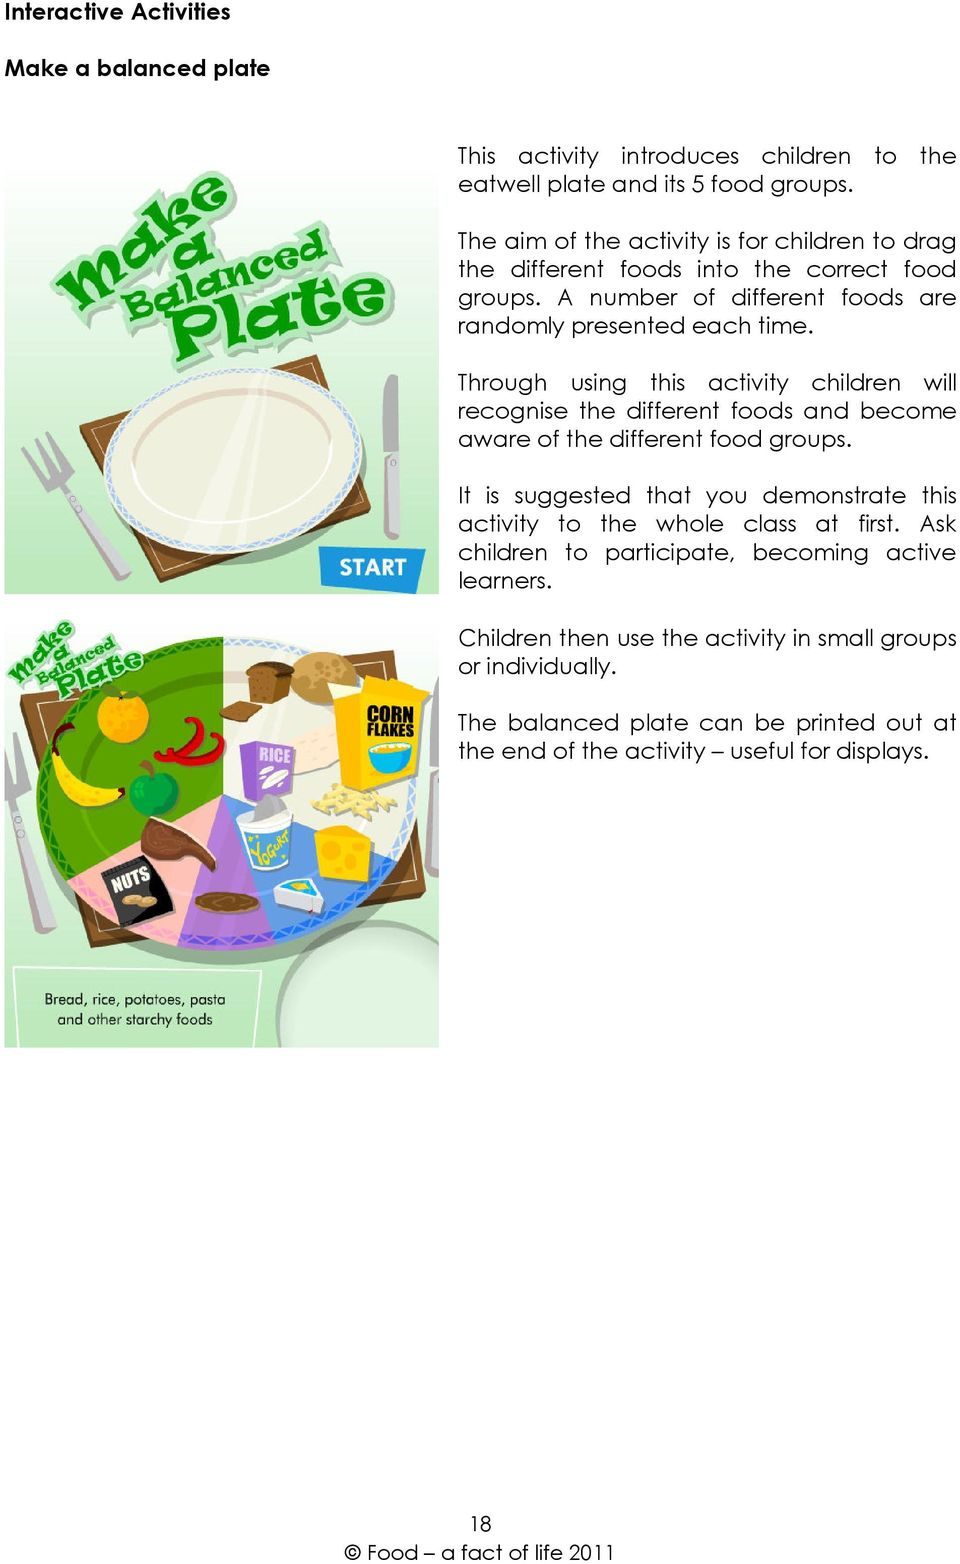 Through using this activity children will recognise the different foods and become aware of the different food groups.